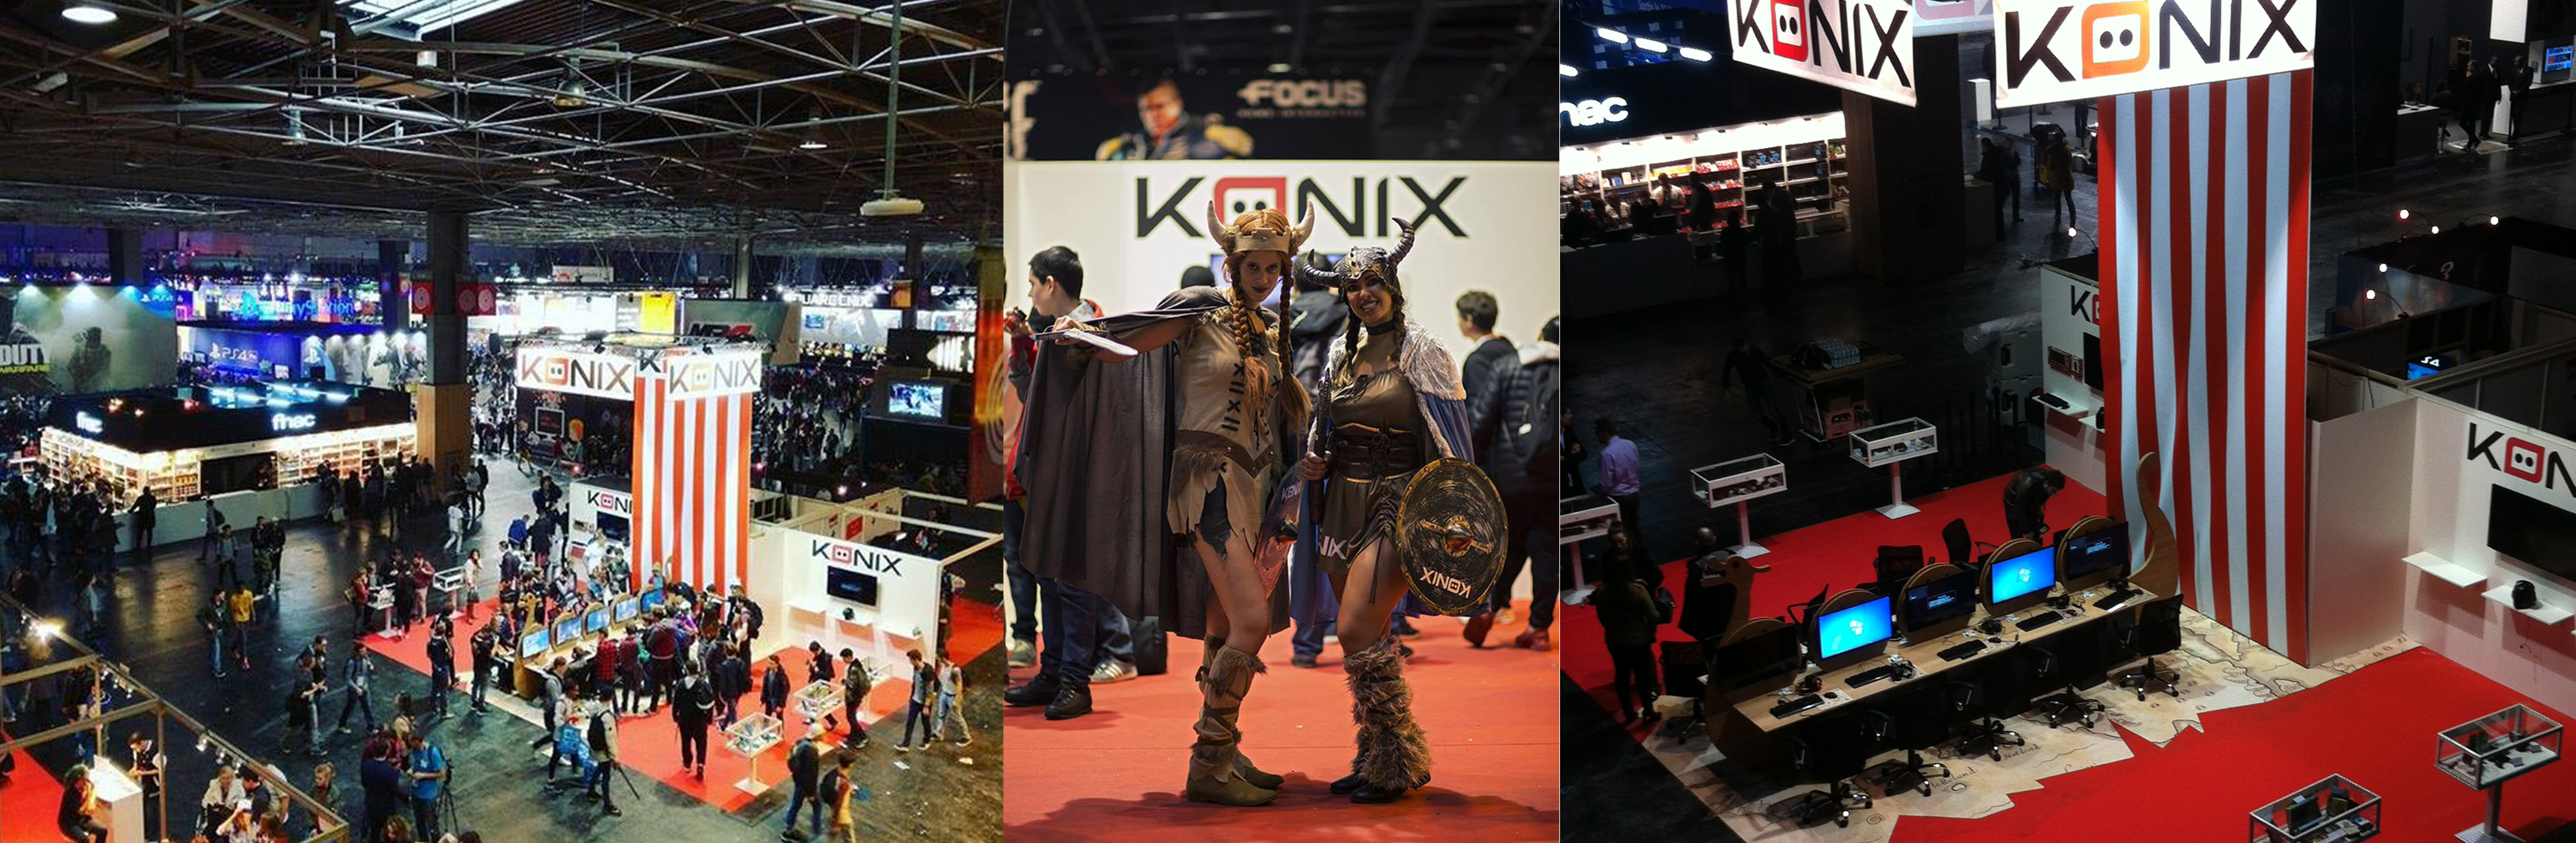 Exhibition Stand Game : Exhibition stand konix paris games week france